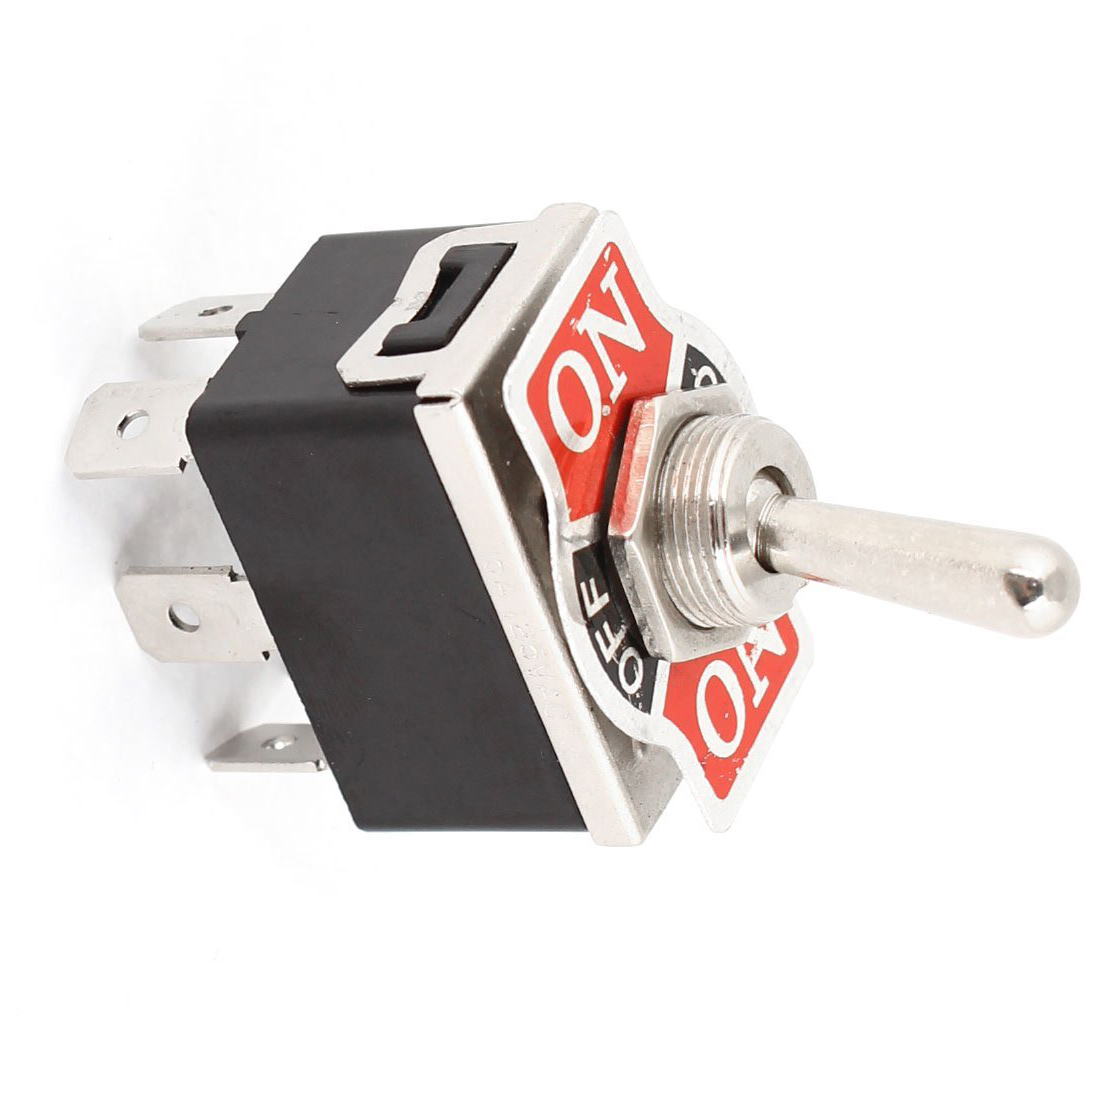 Promotion! AC 250V/10A 125V/15A DPDT 3 Position ON/OFF/ON 6 Pins Toggle Switch Black+Silver 1 pc new red 9 pin on off on 3 position mini toggle switch ac 6a 125v 3a 250v ve521 p